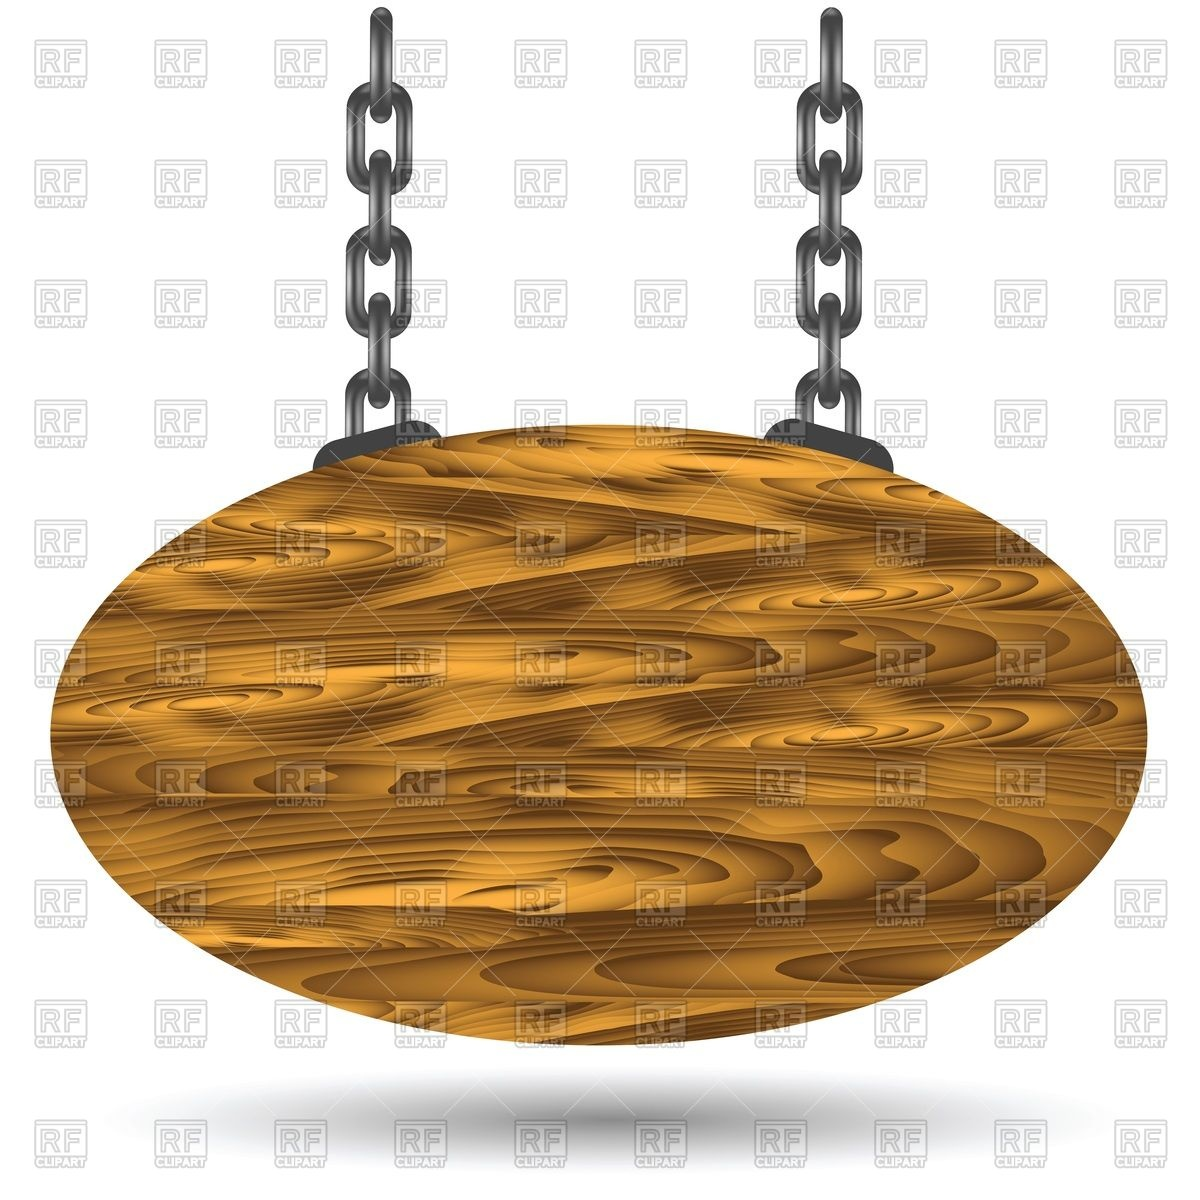 Oval wooden sign board hanging on a chains Stock Vector Image.